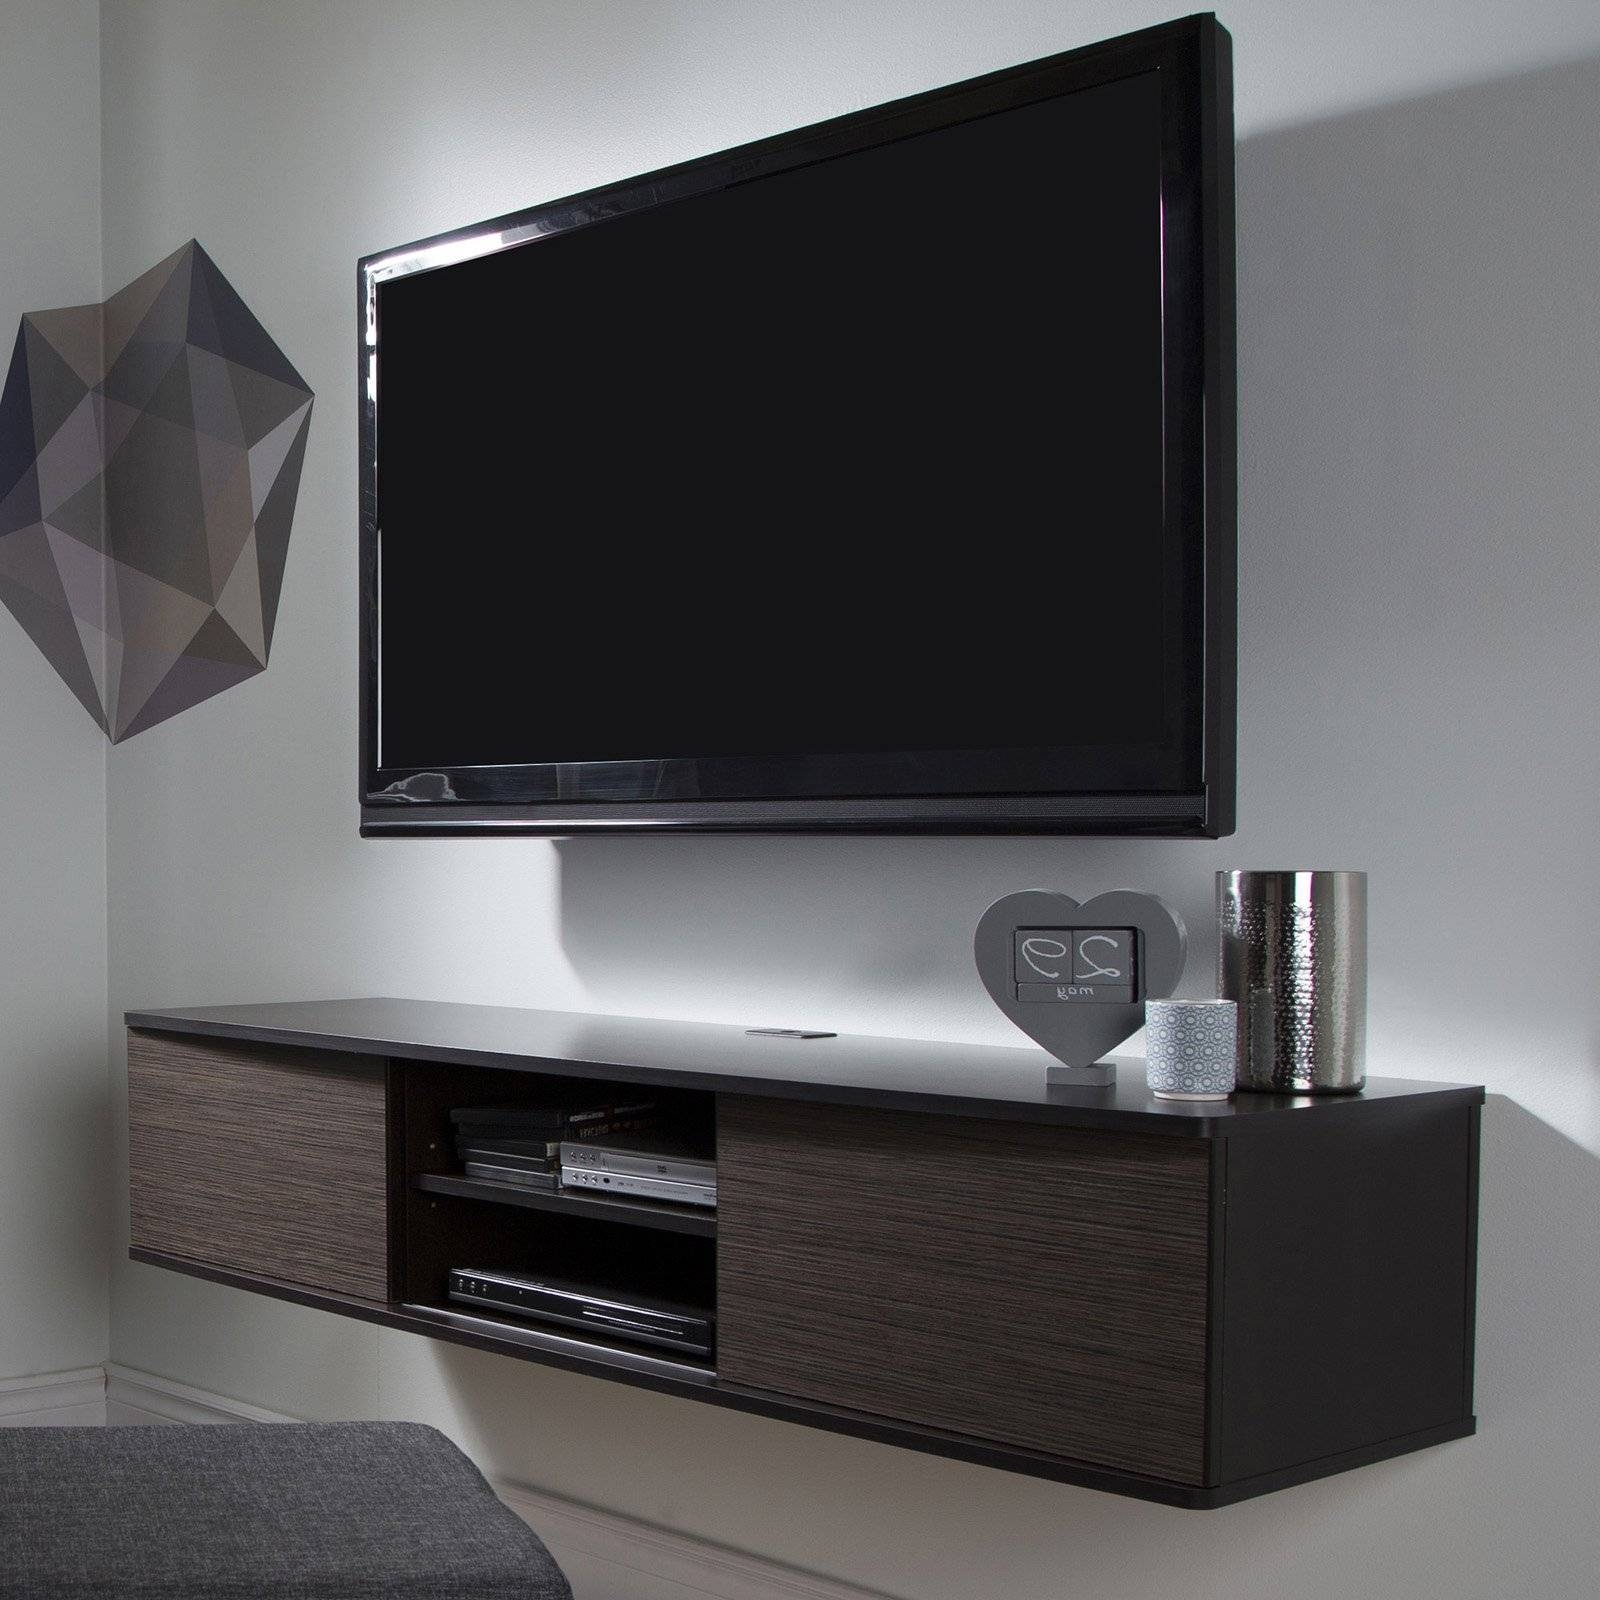 Contemporary & Modern Tv Stands | Hayneedle Regarding Low Profile Contemporary Tv Stands (View 15 of 15)